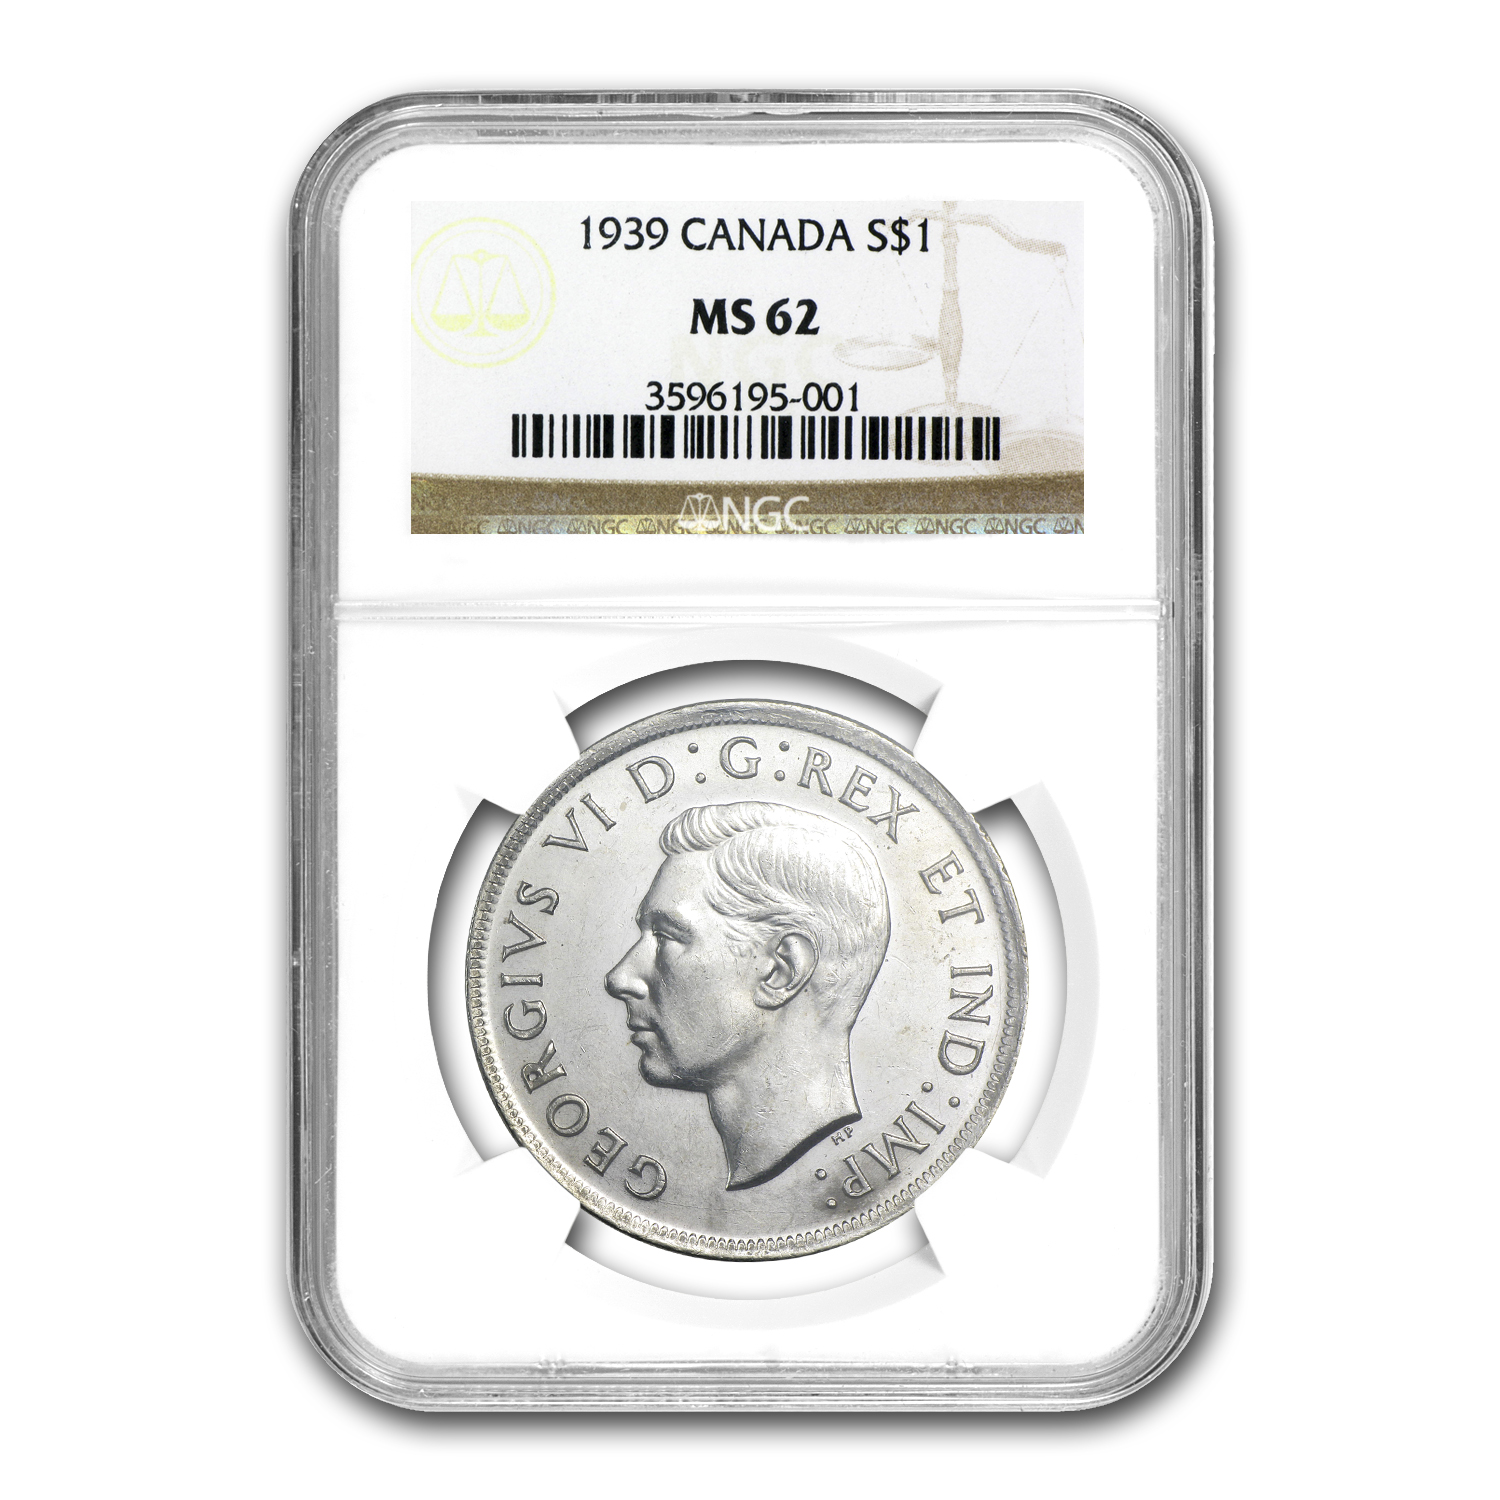 1939 Canada Silver Dollar King George VI MS-62 NGC